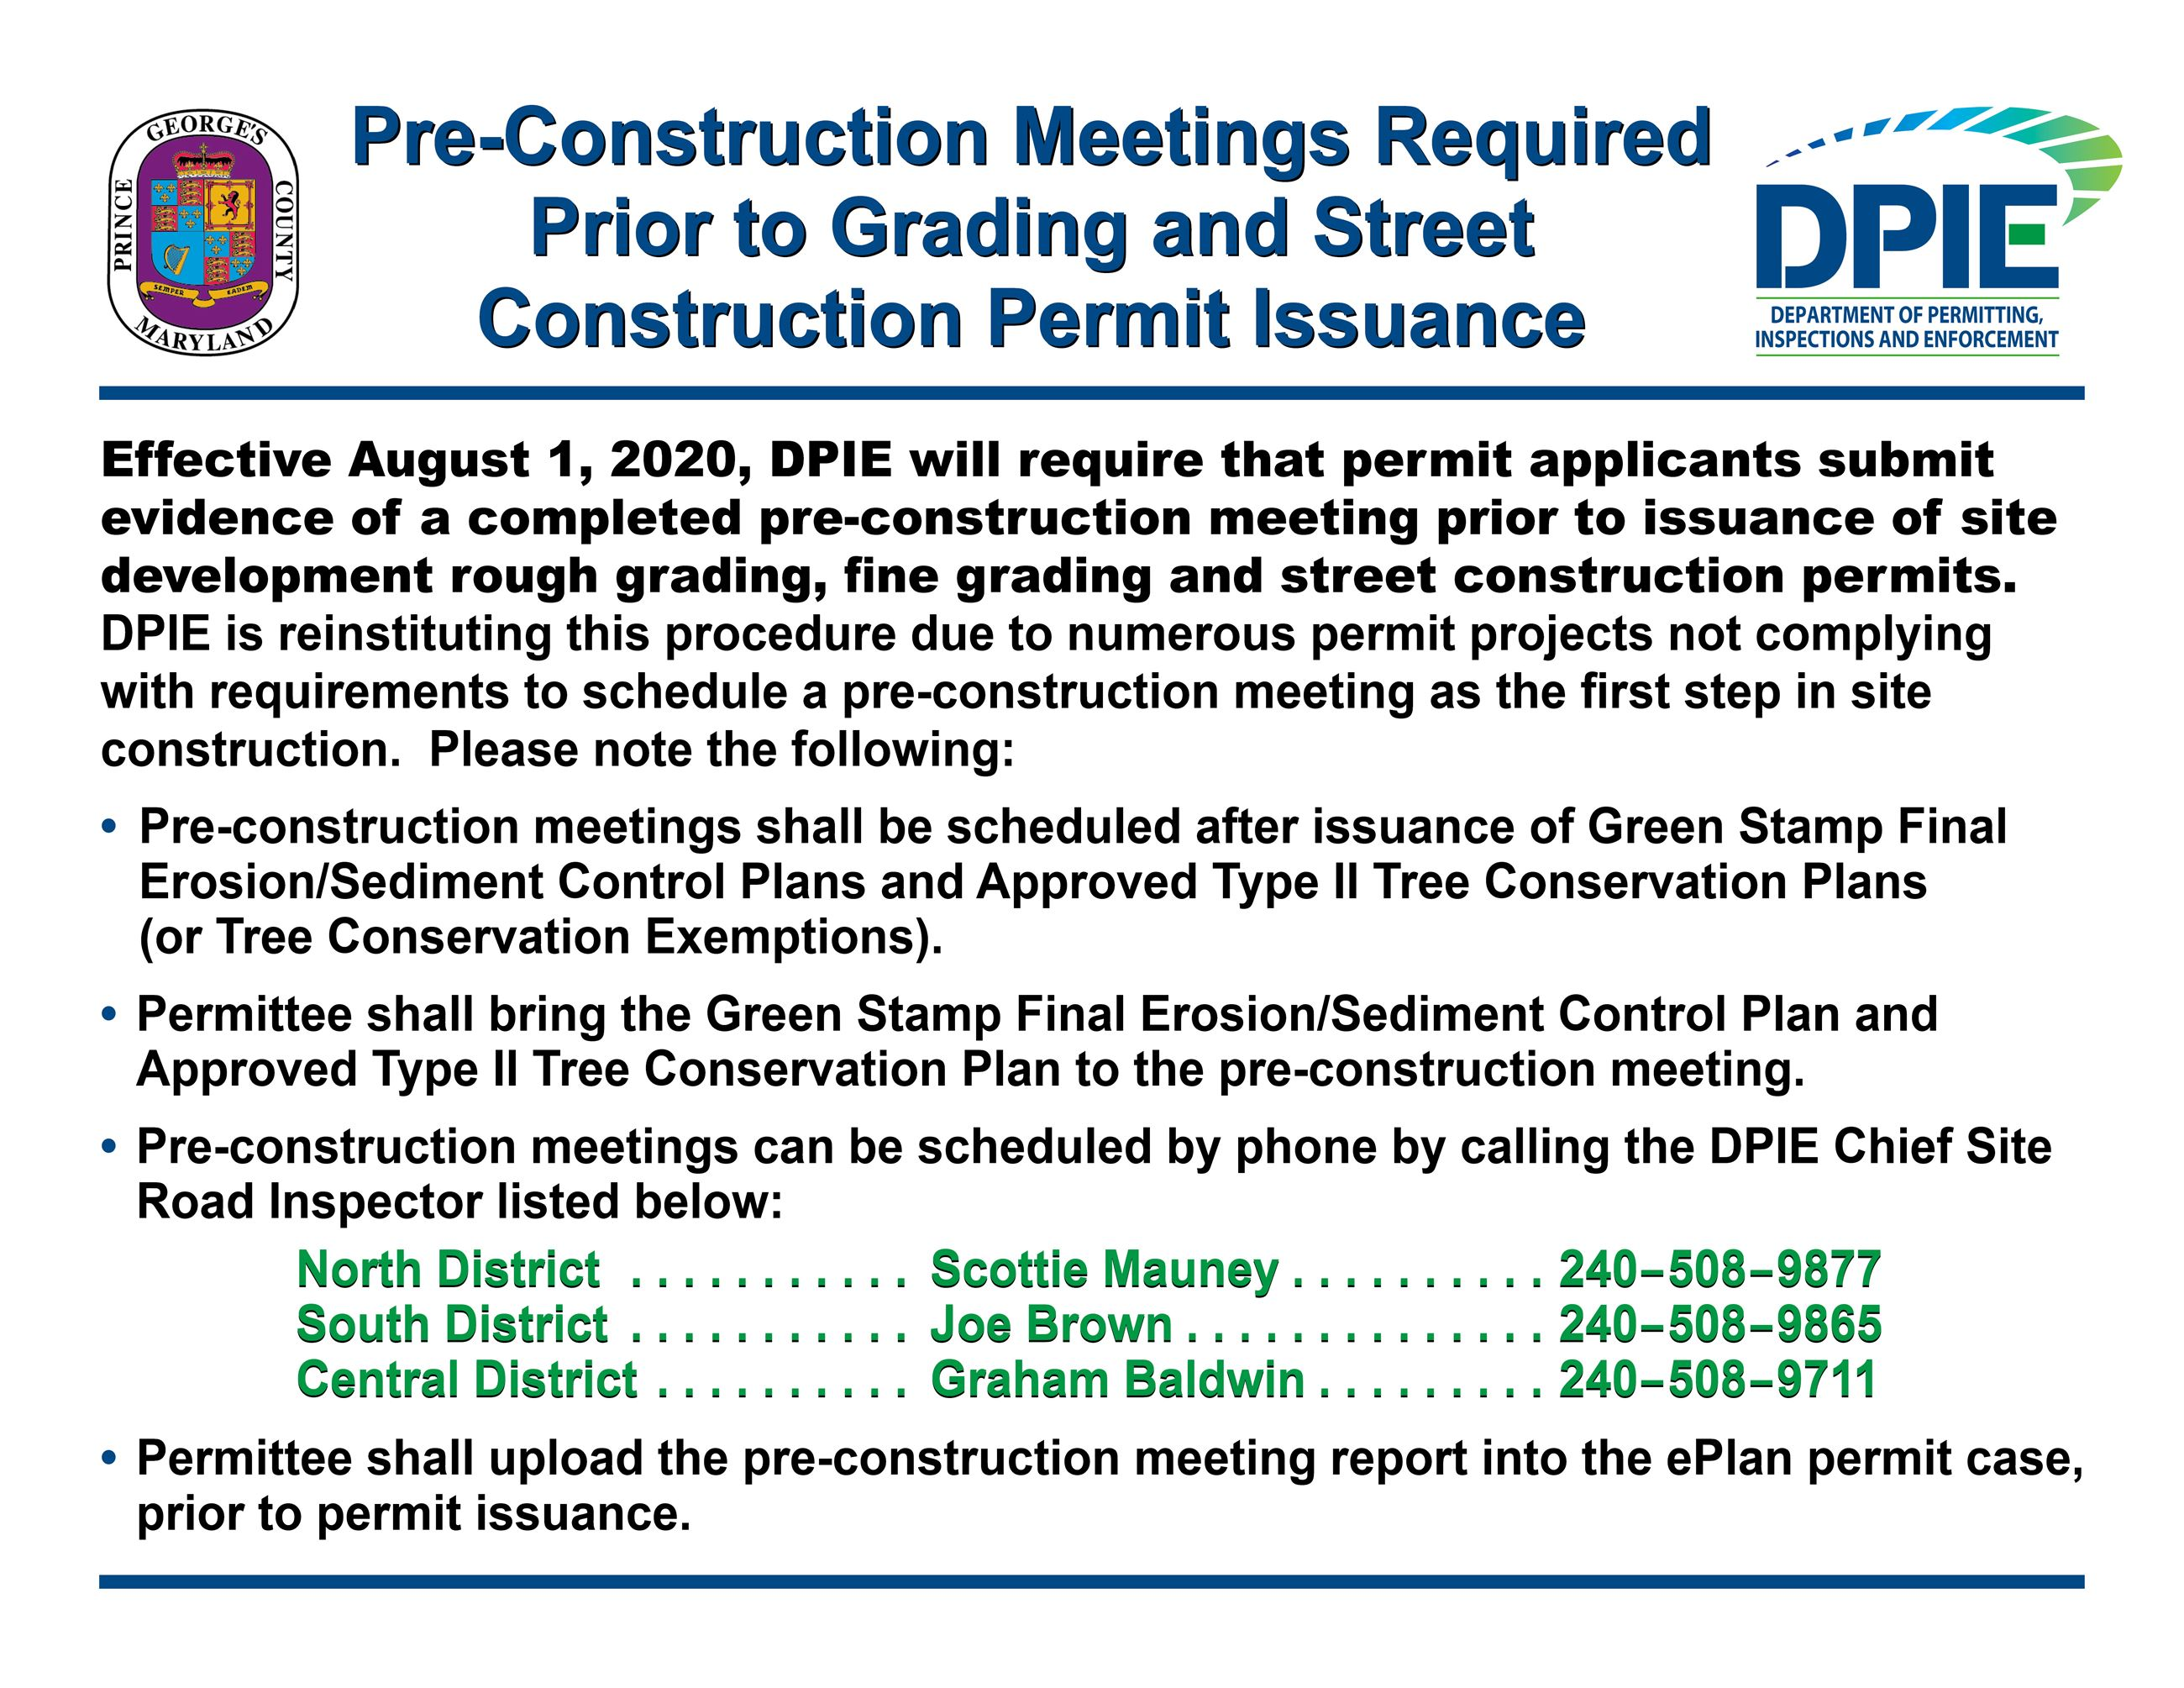 Pre-Construction Meetings Required Prior to Permits